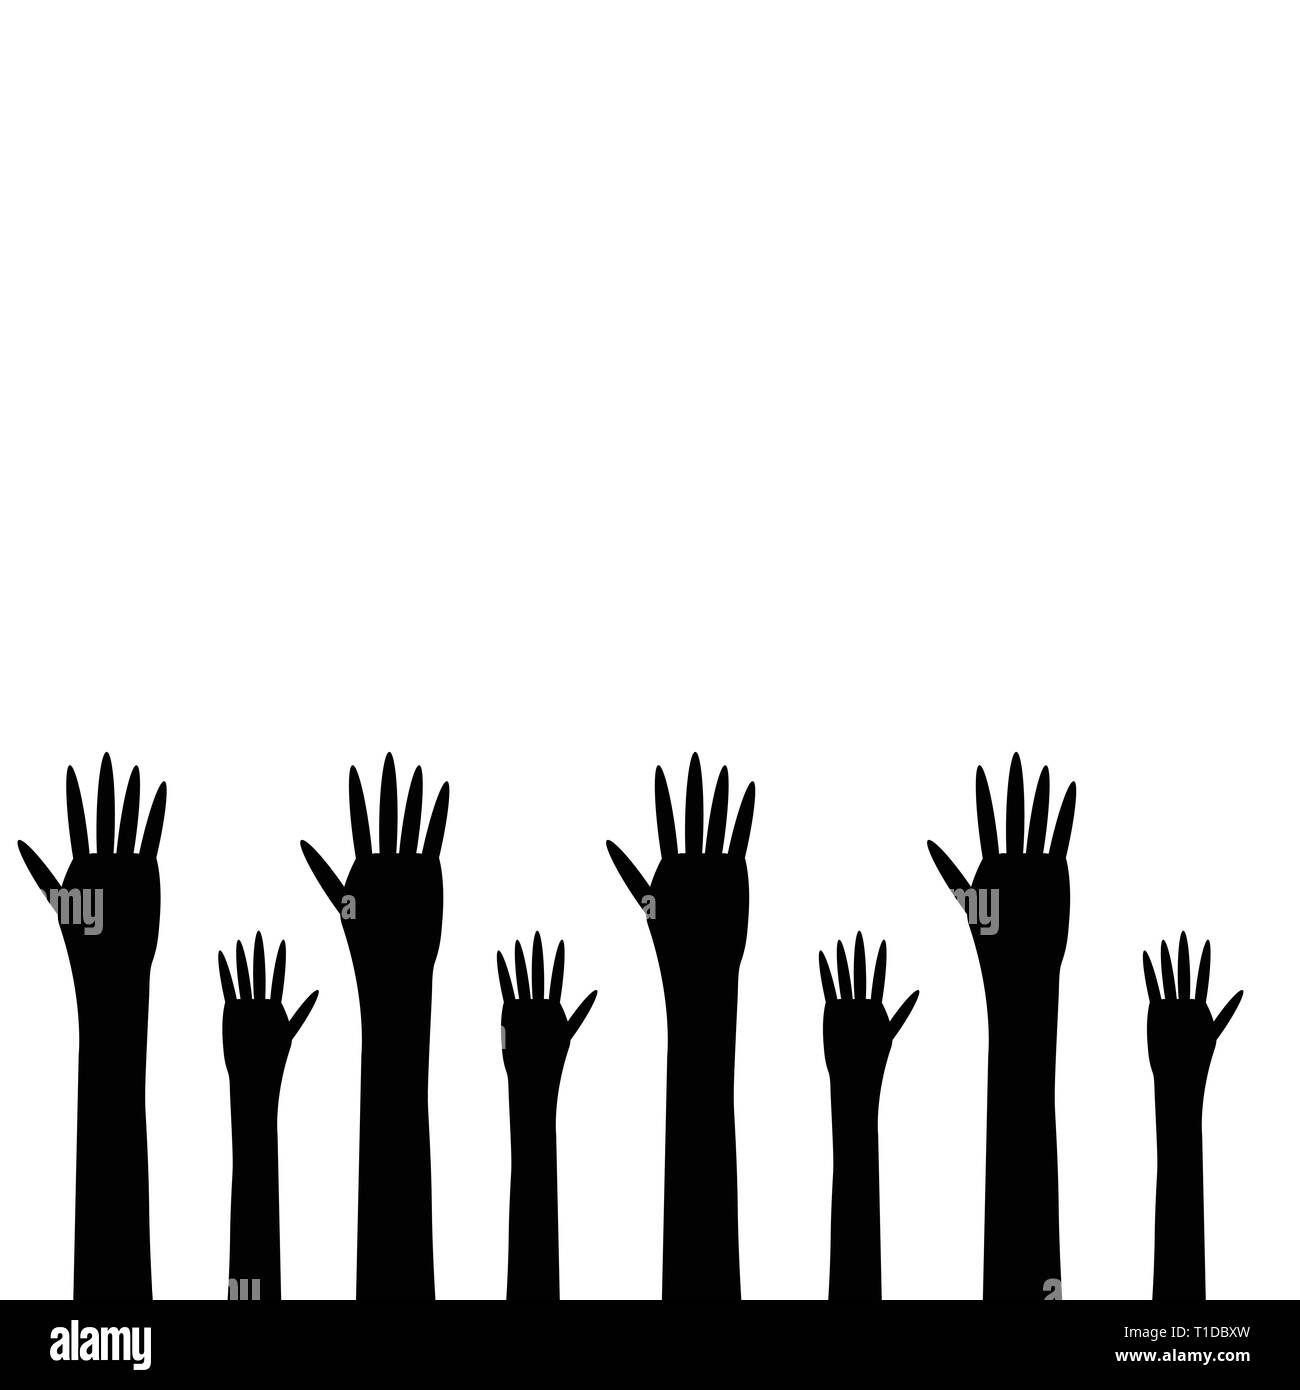 black hands on a white background - Stock Image